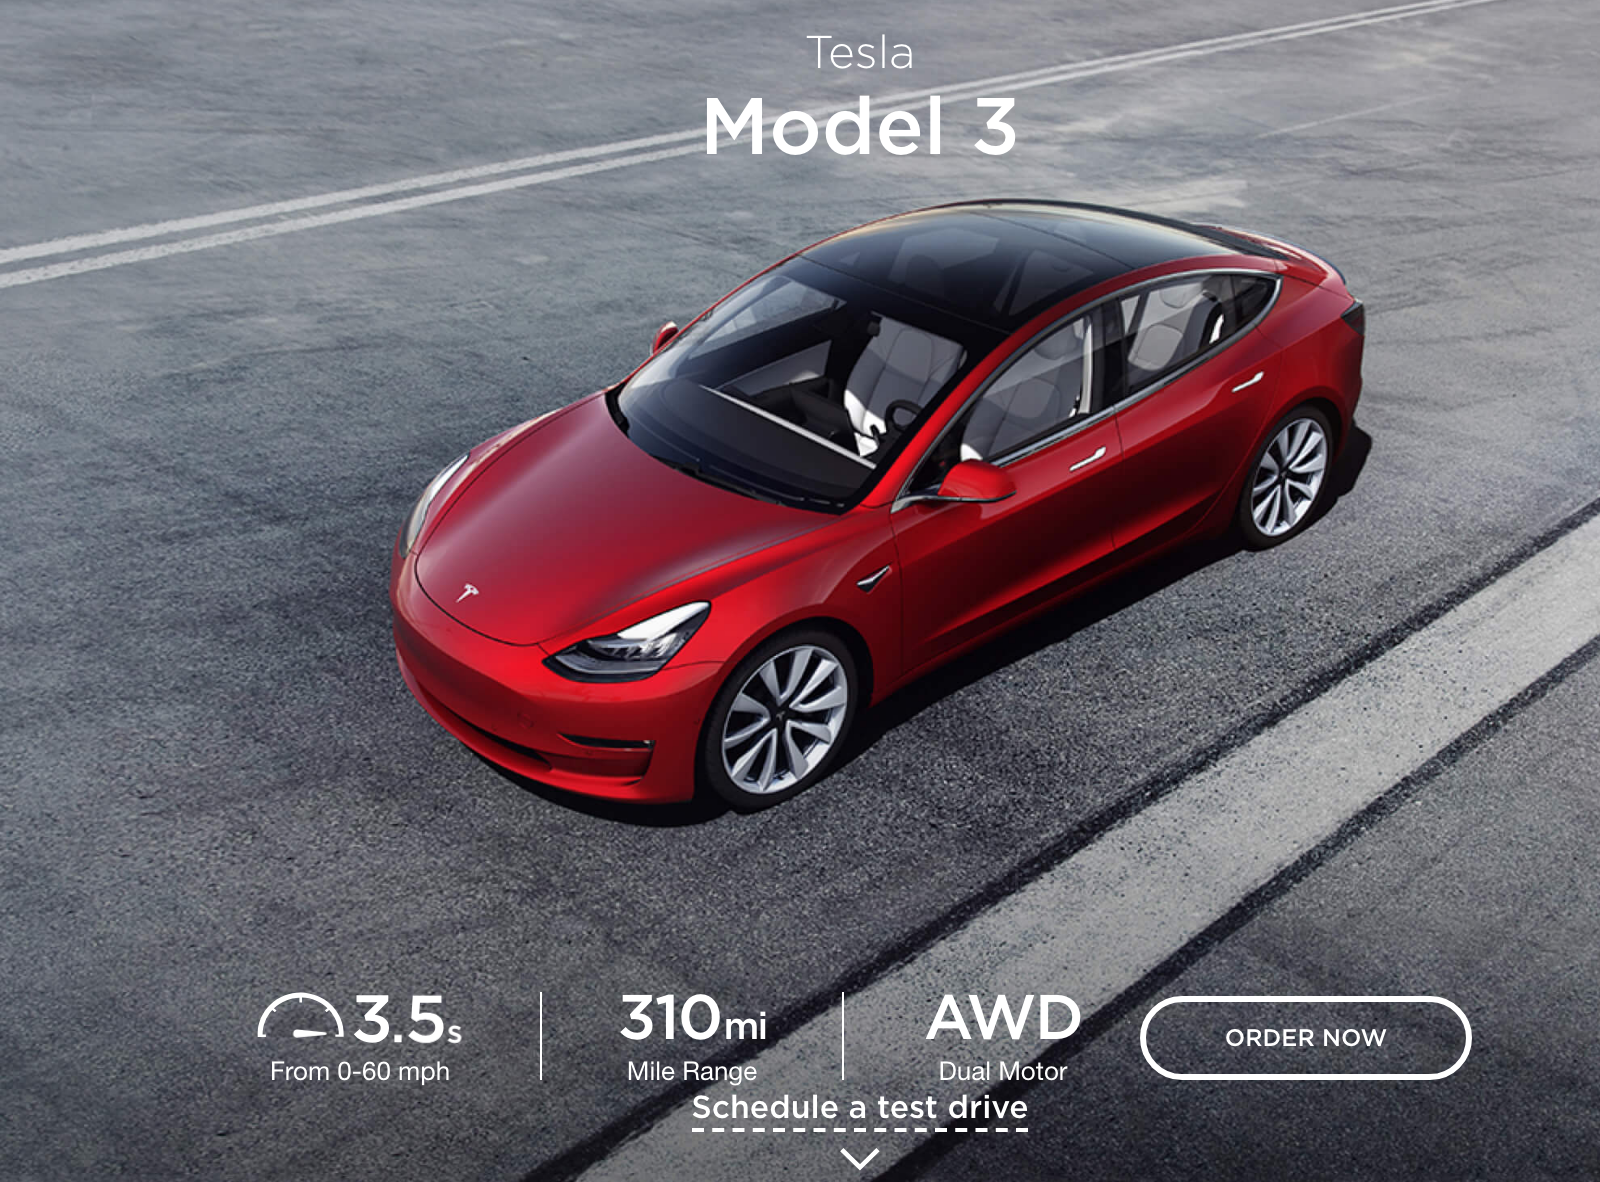 Tesla's Model 3 page in July 2018.